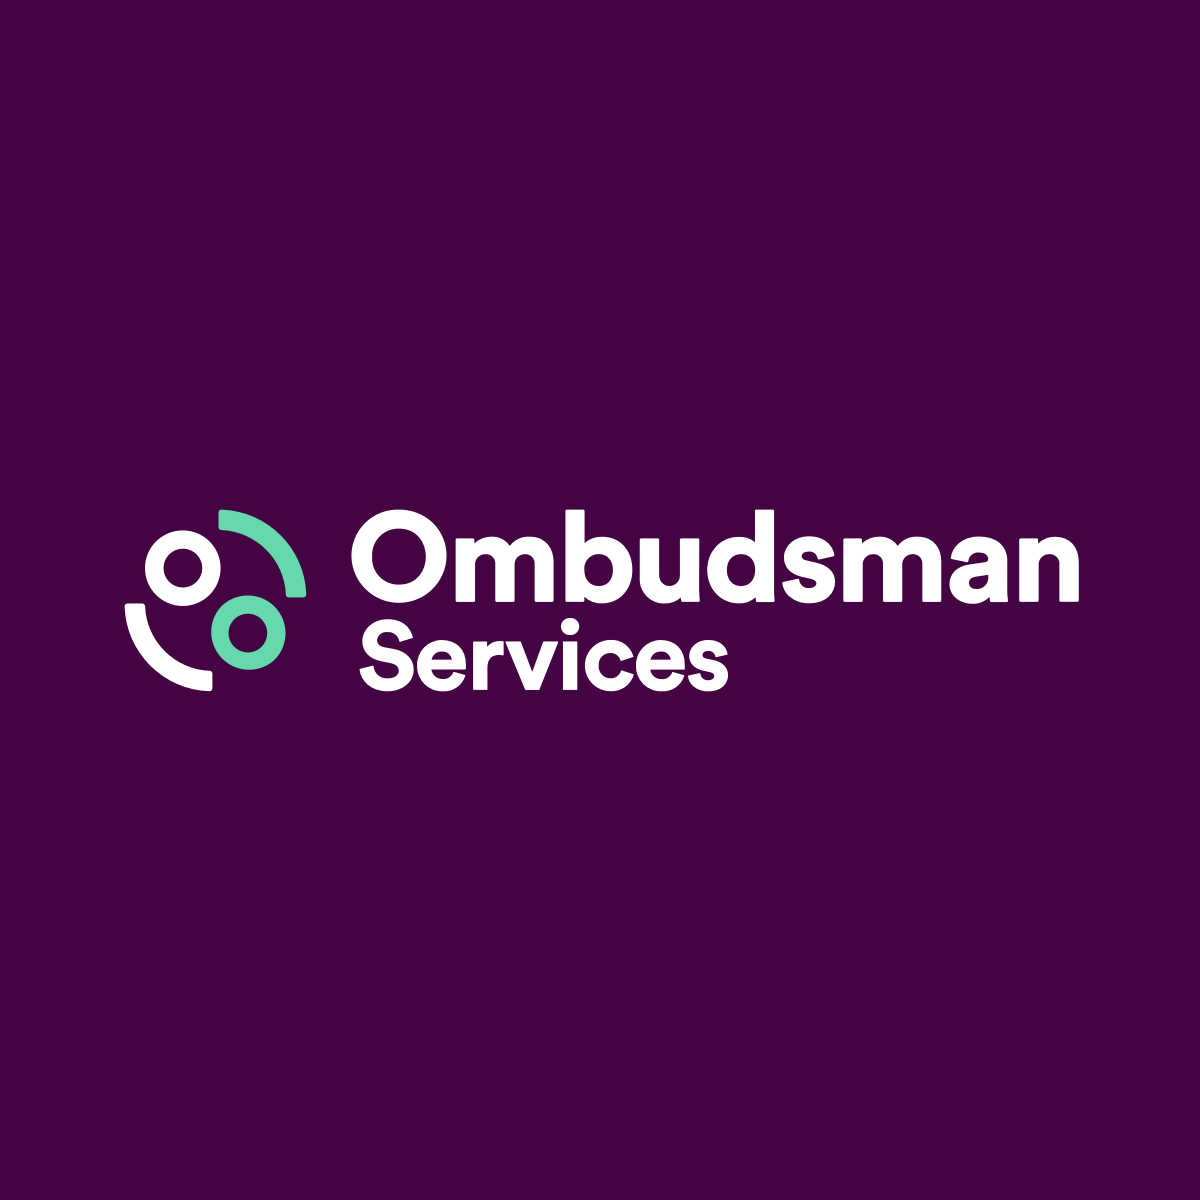 Energy Ombudsman: Here to help with gas & electricity